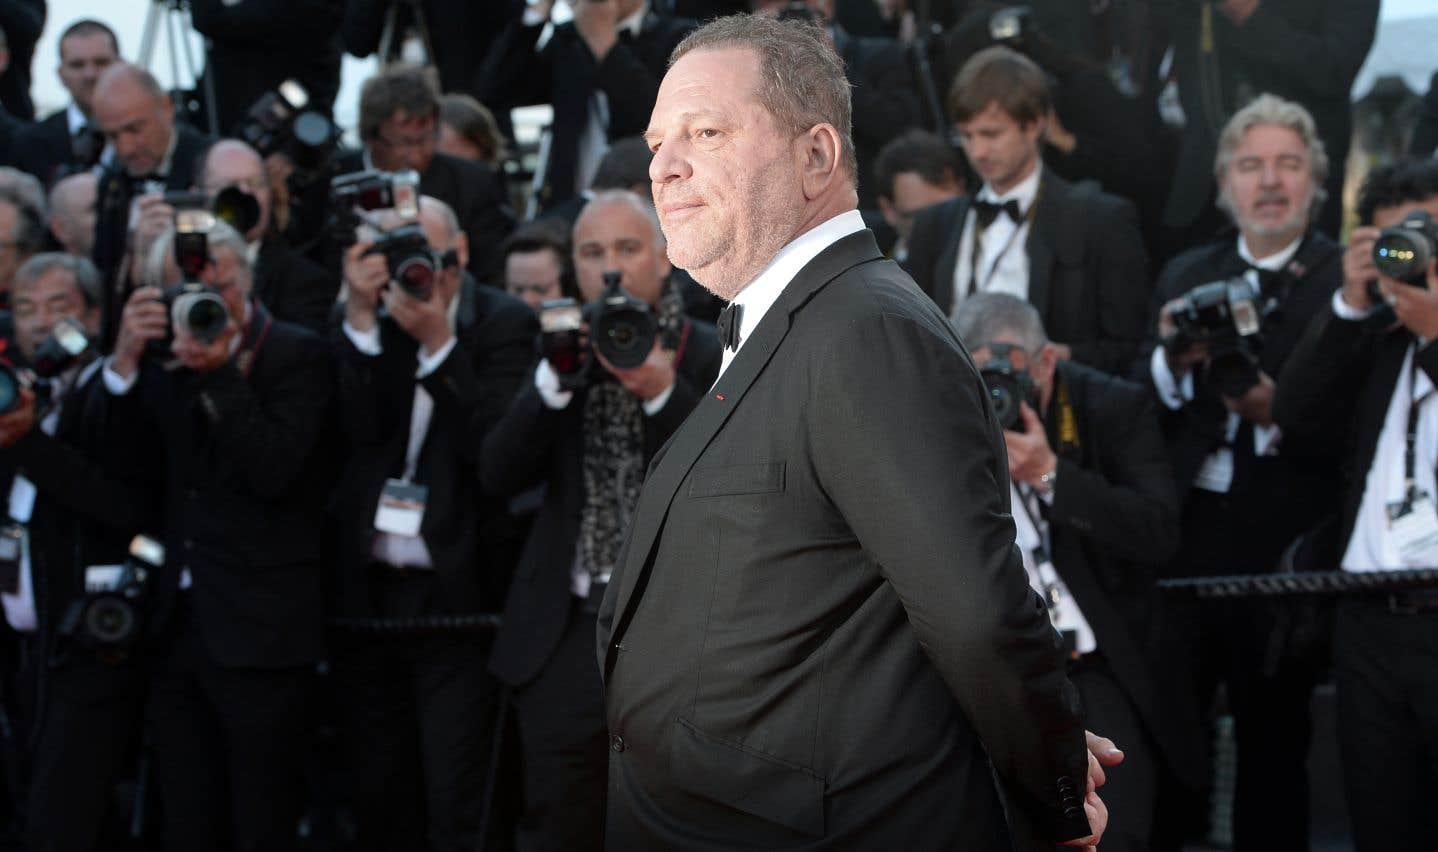 Des questions sur l'omertà à Hollywood après le licenciement de Harvey Weinstein